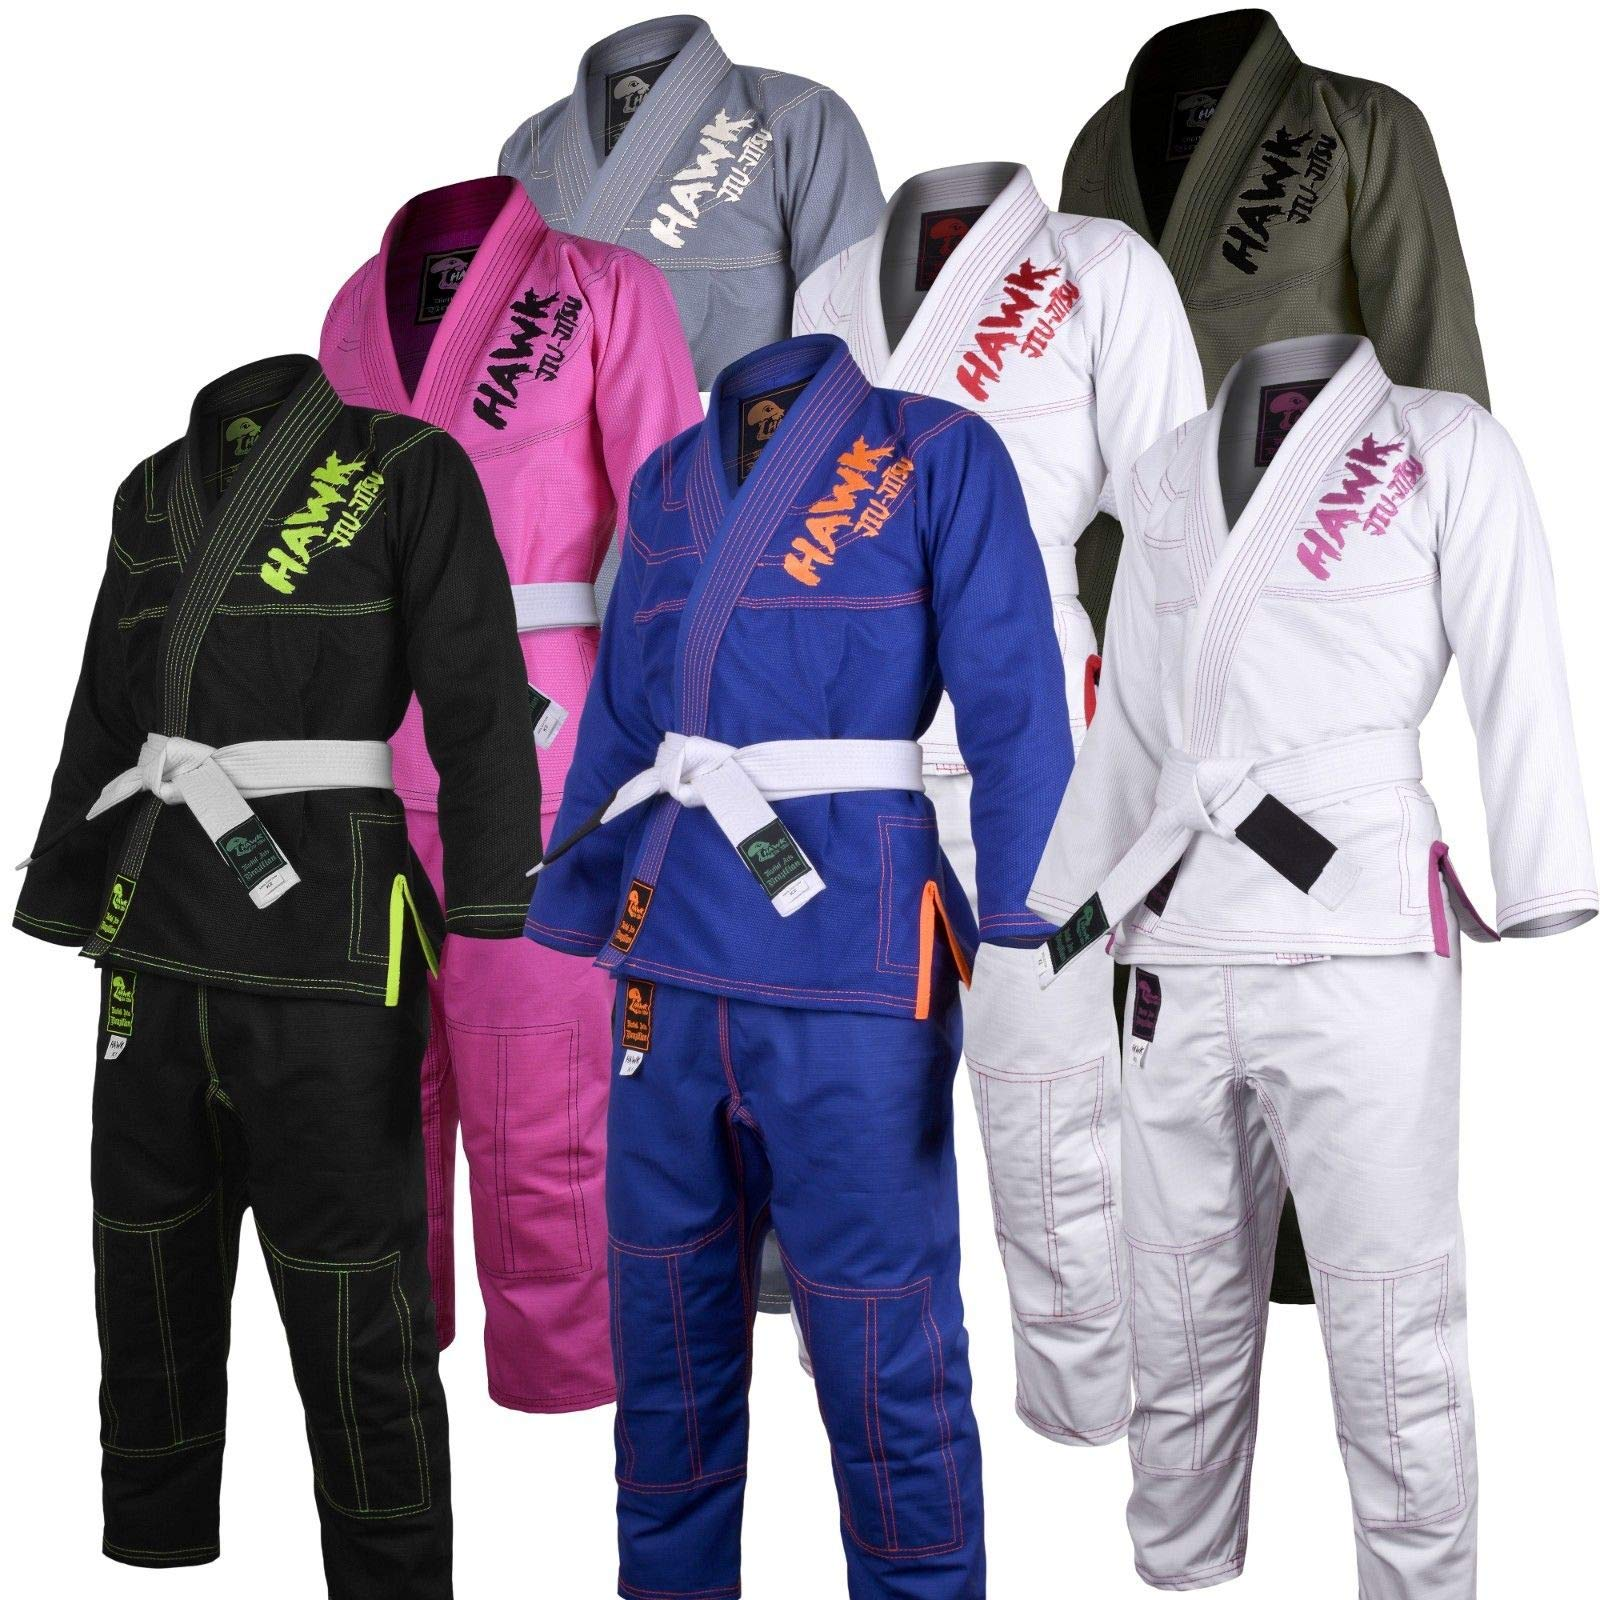 Size 3 Or S With Bag Protective Gear Modest Tae Kwon Do And Combat Sports Protective Gear Full Set